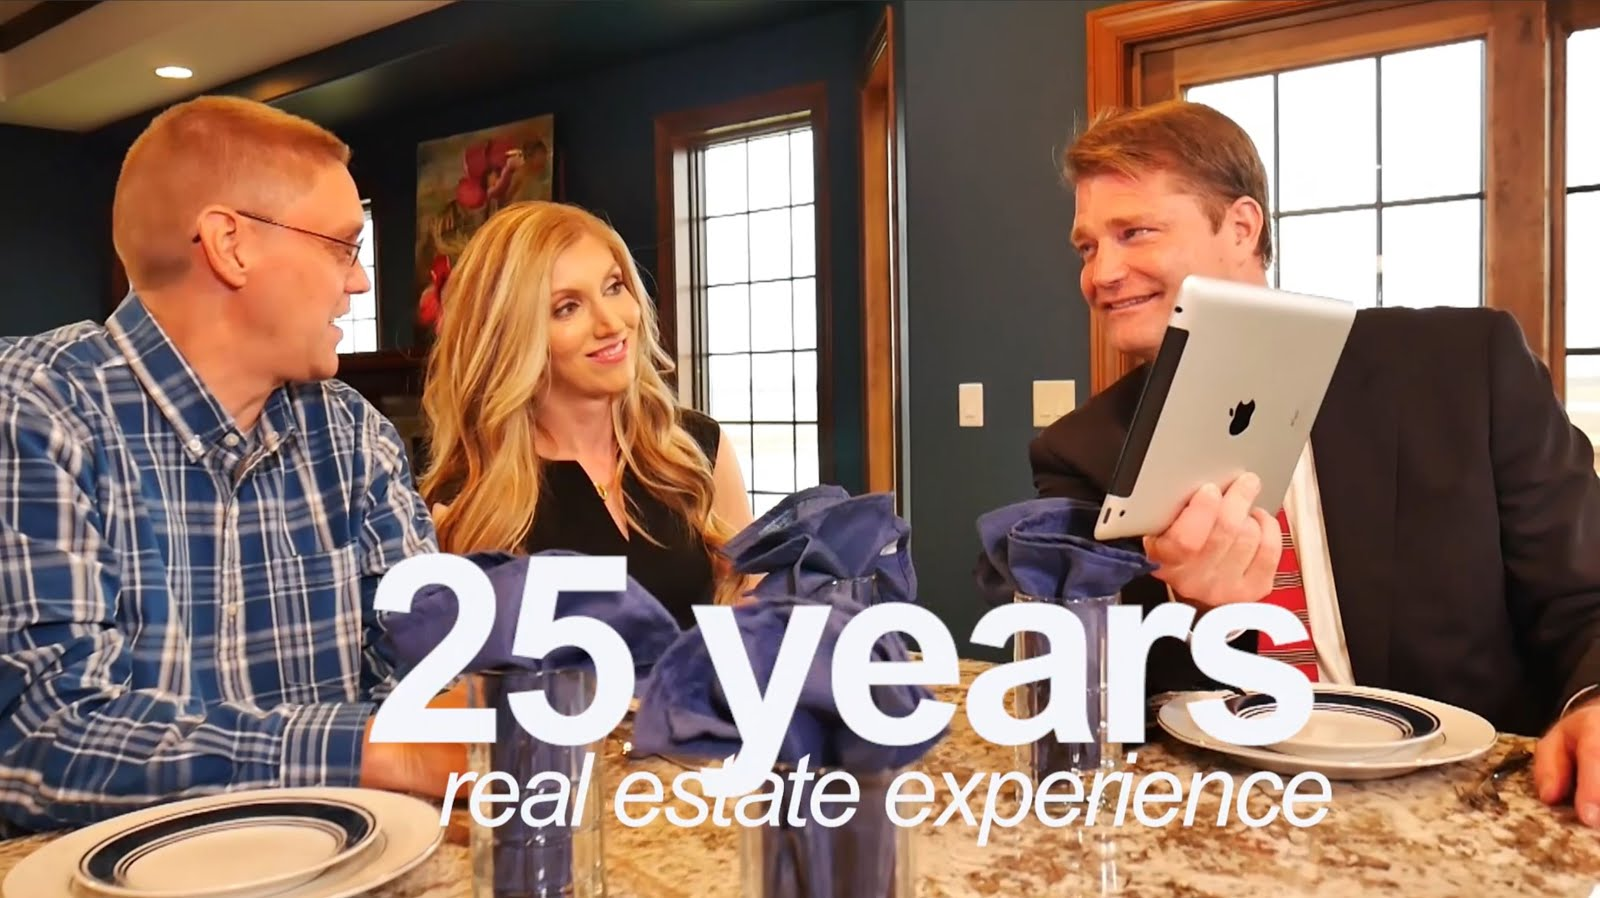 25 Years of real estate experience